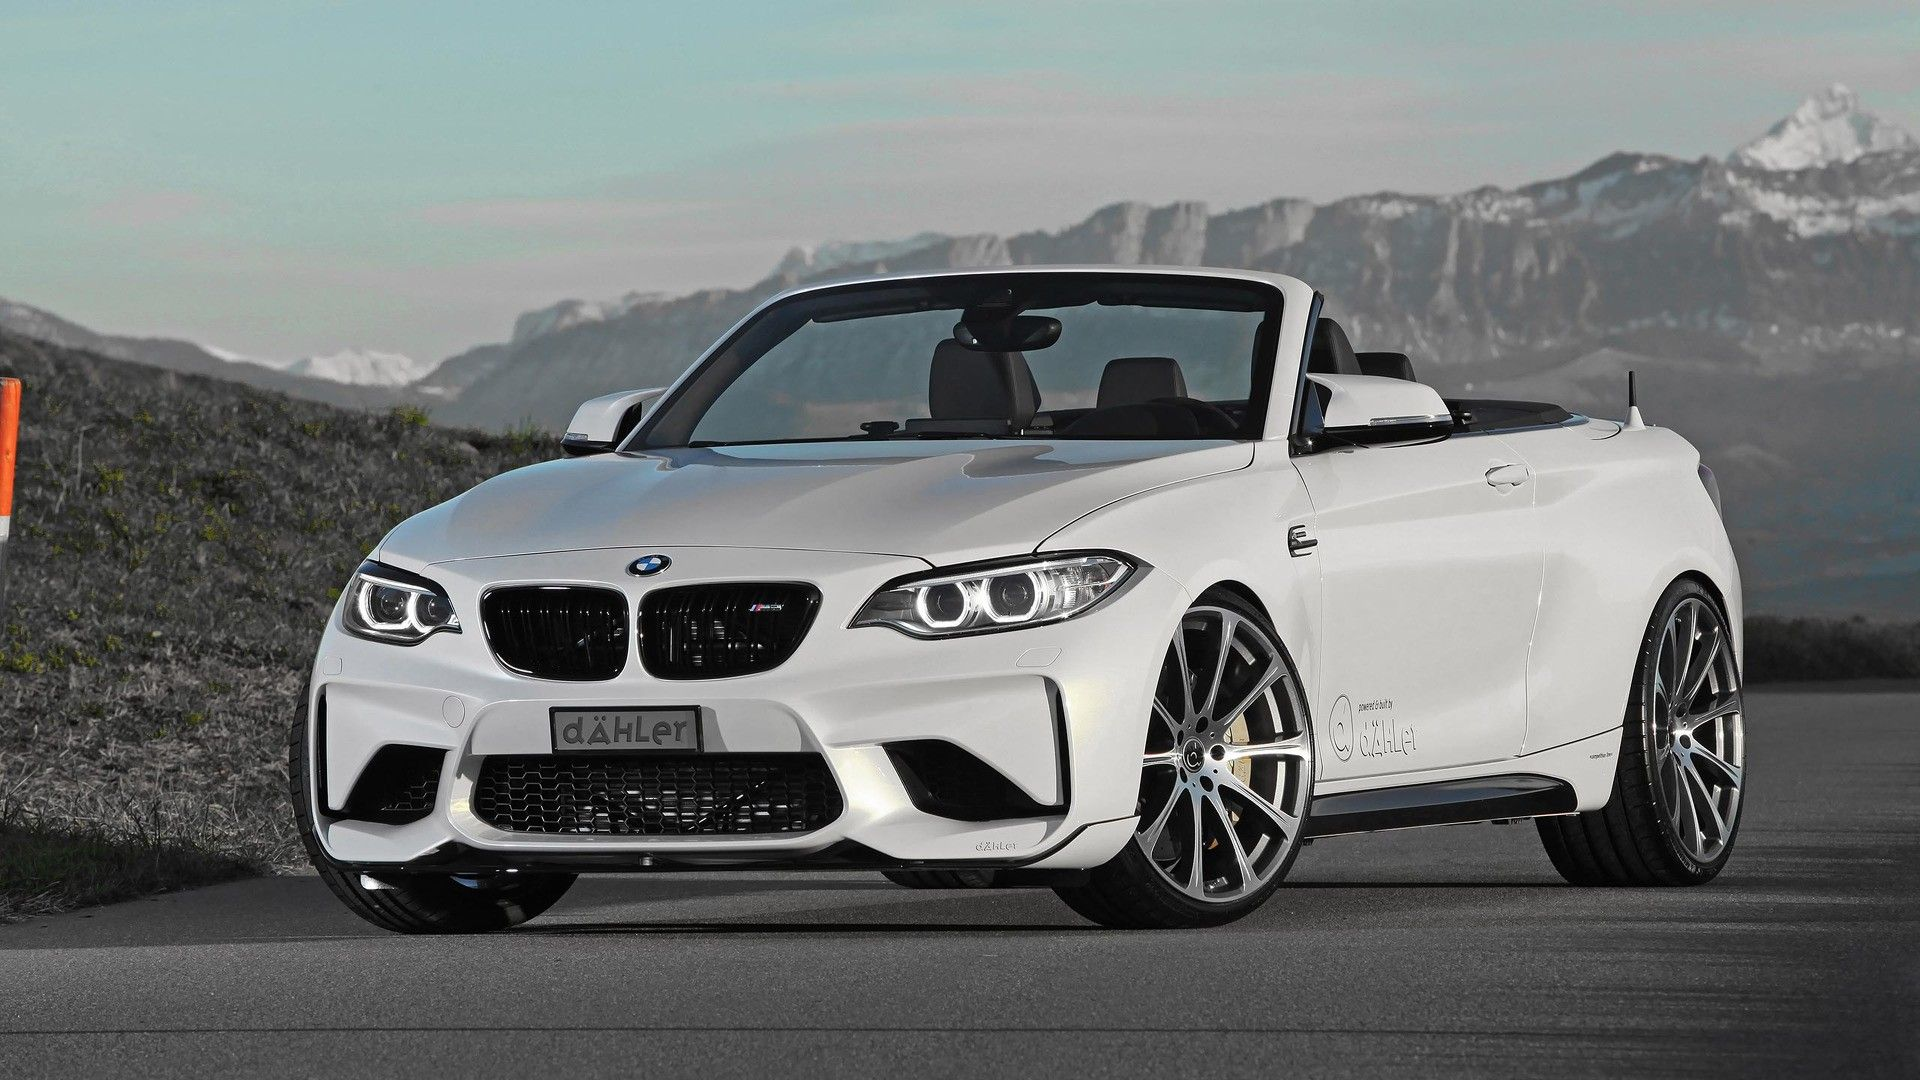 The M2 Convertible Bmw Never Built With Images Bmw M2 Bmw